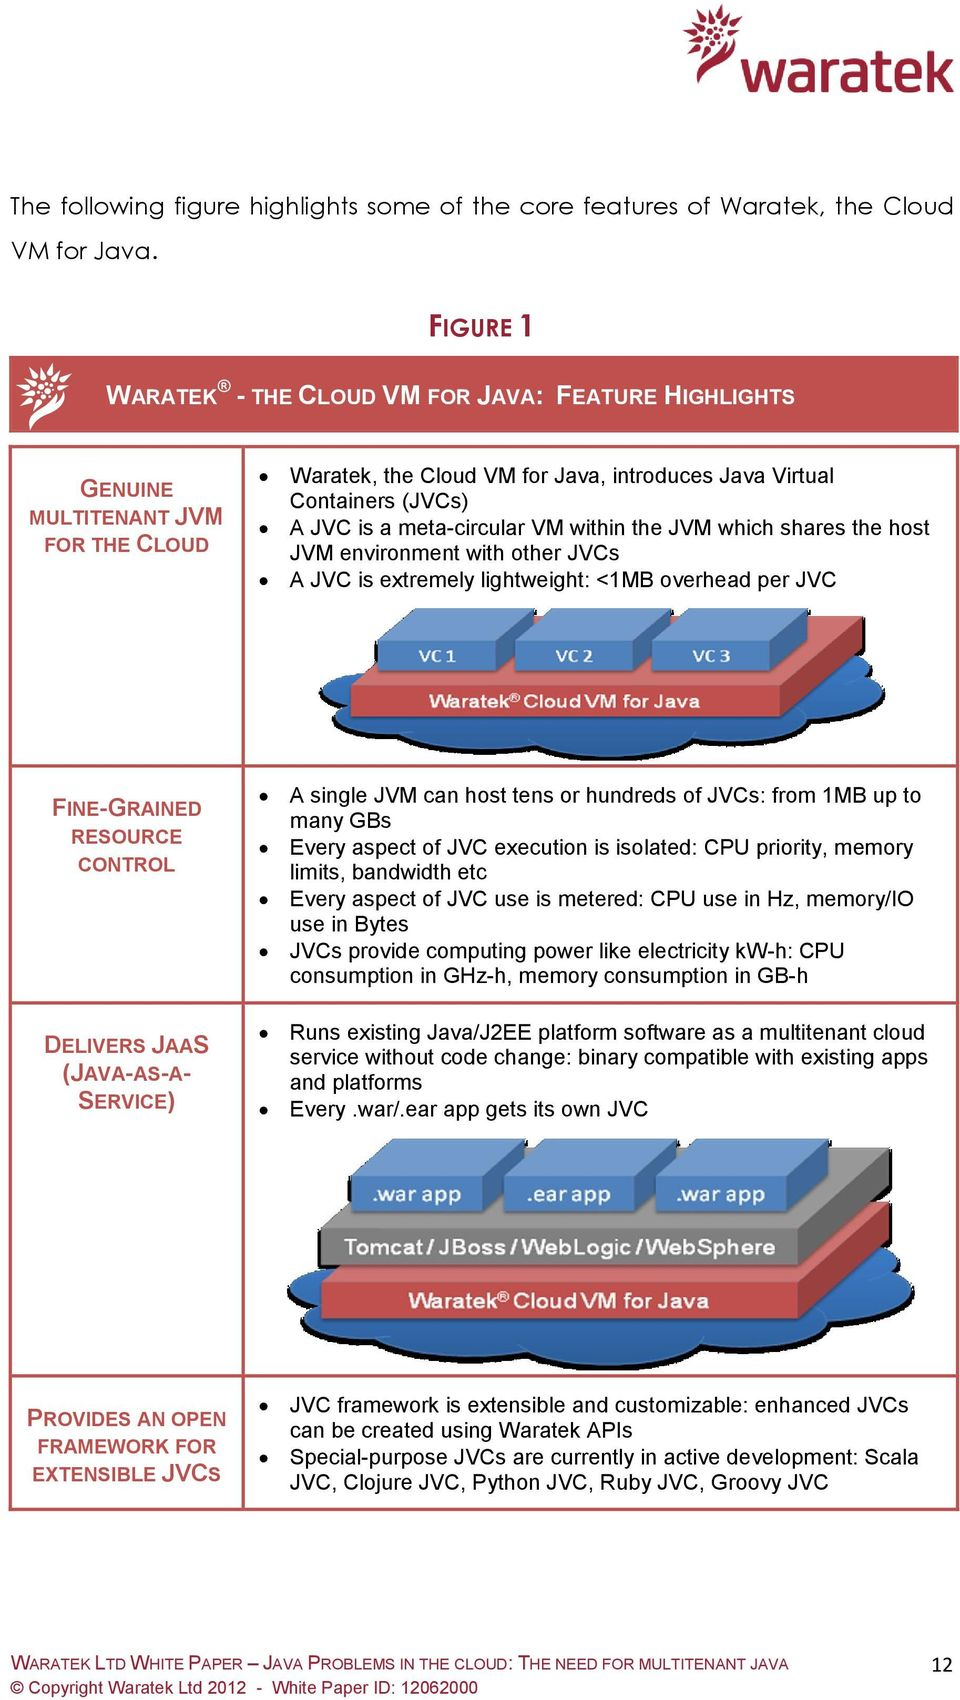 VM within the JVM which shares the host JVM environment with other JVCs A JVC is extremely lightweight: <1MB overhead per JVC FINE-GRAINED RESOURCE CONTROL DELIVERS JAAS (JAVA-AS-A- SERVICE) A single